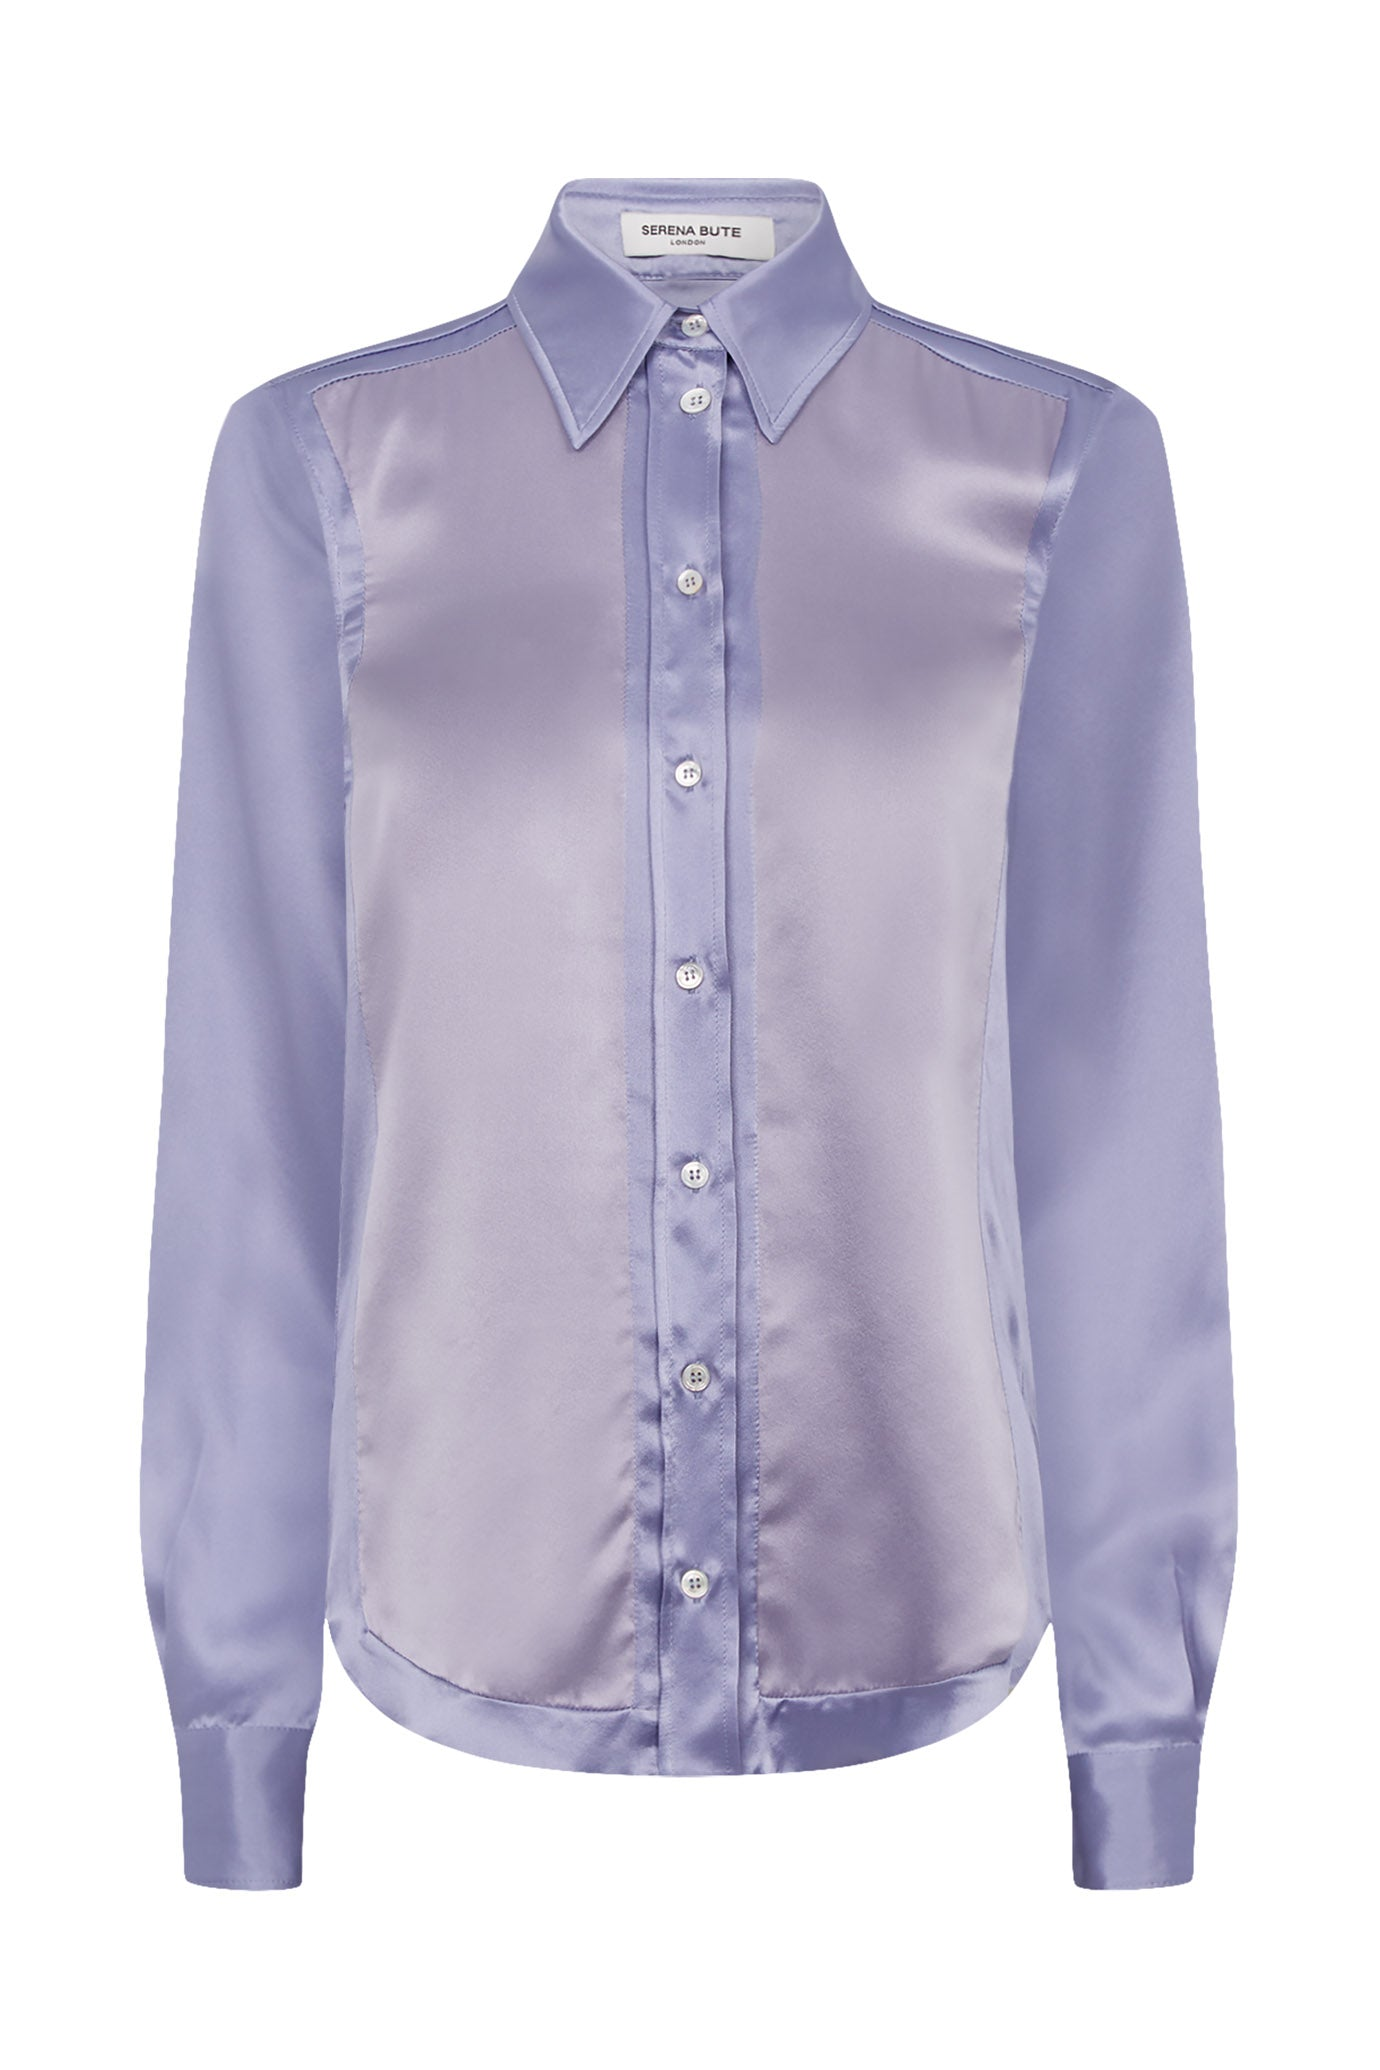 Two Tone Tailored Shirt - Lavender & Silver Silk - SERENA BUTE